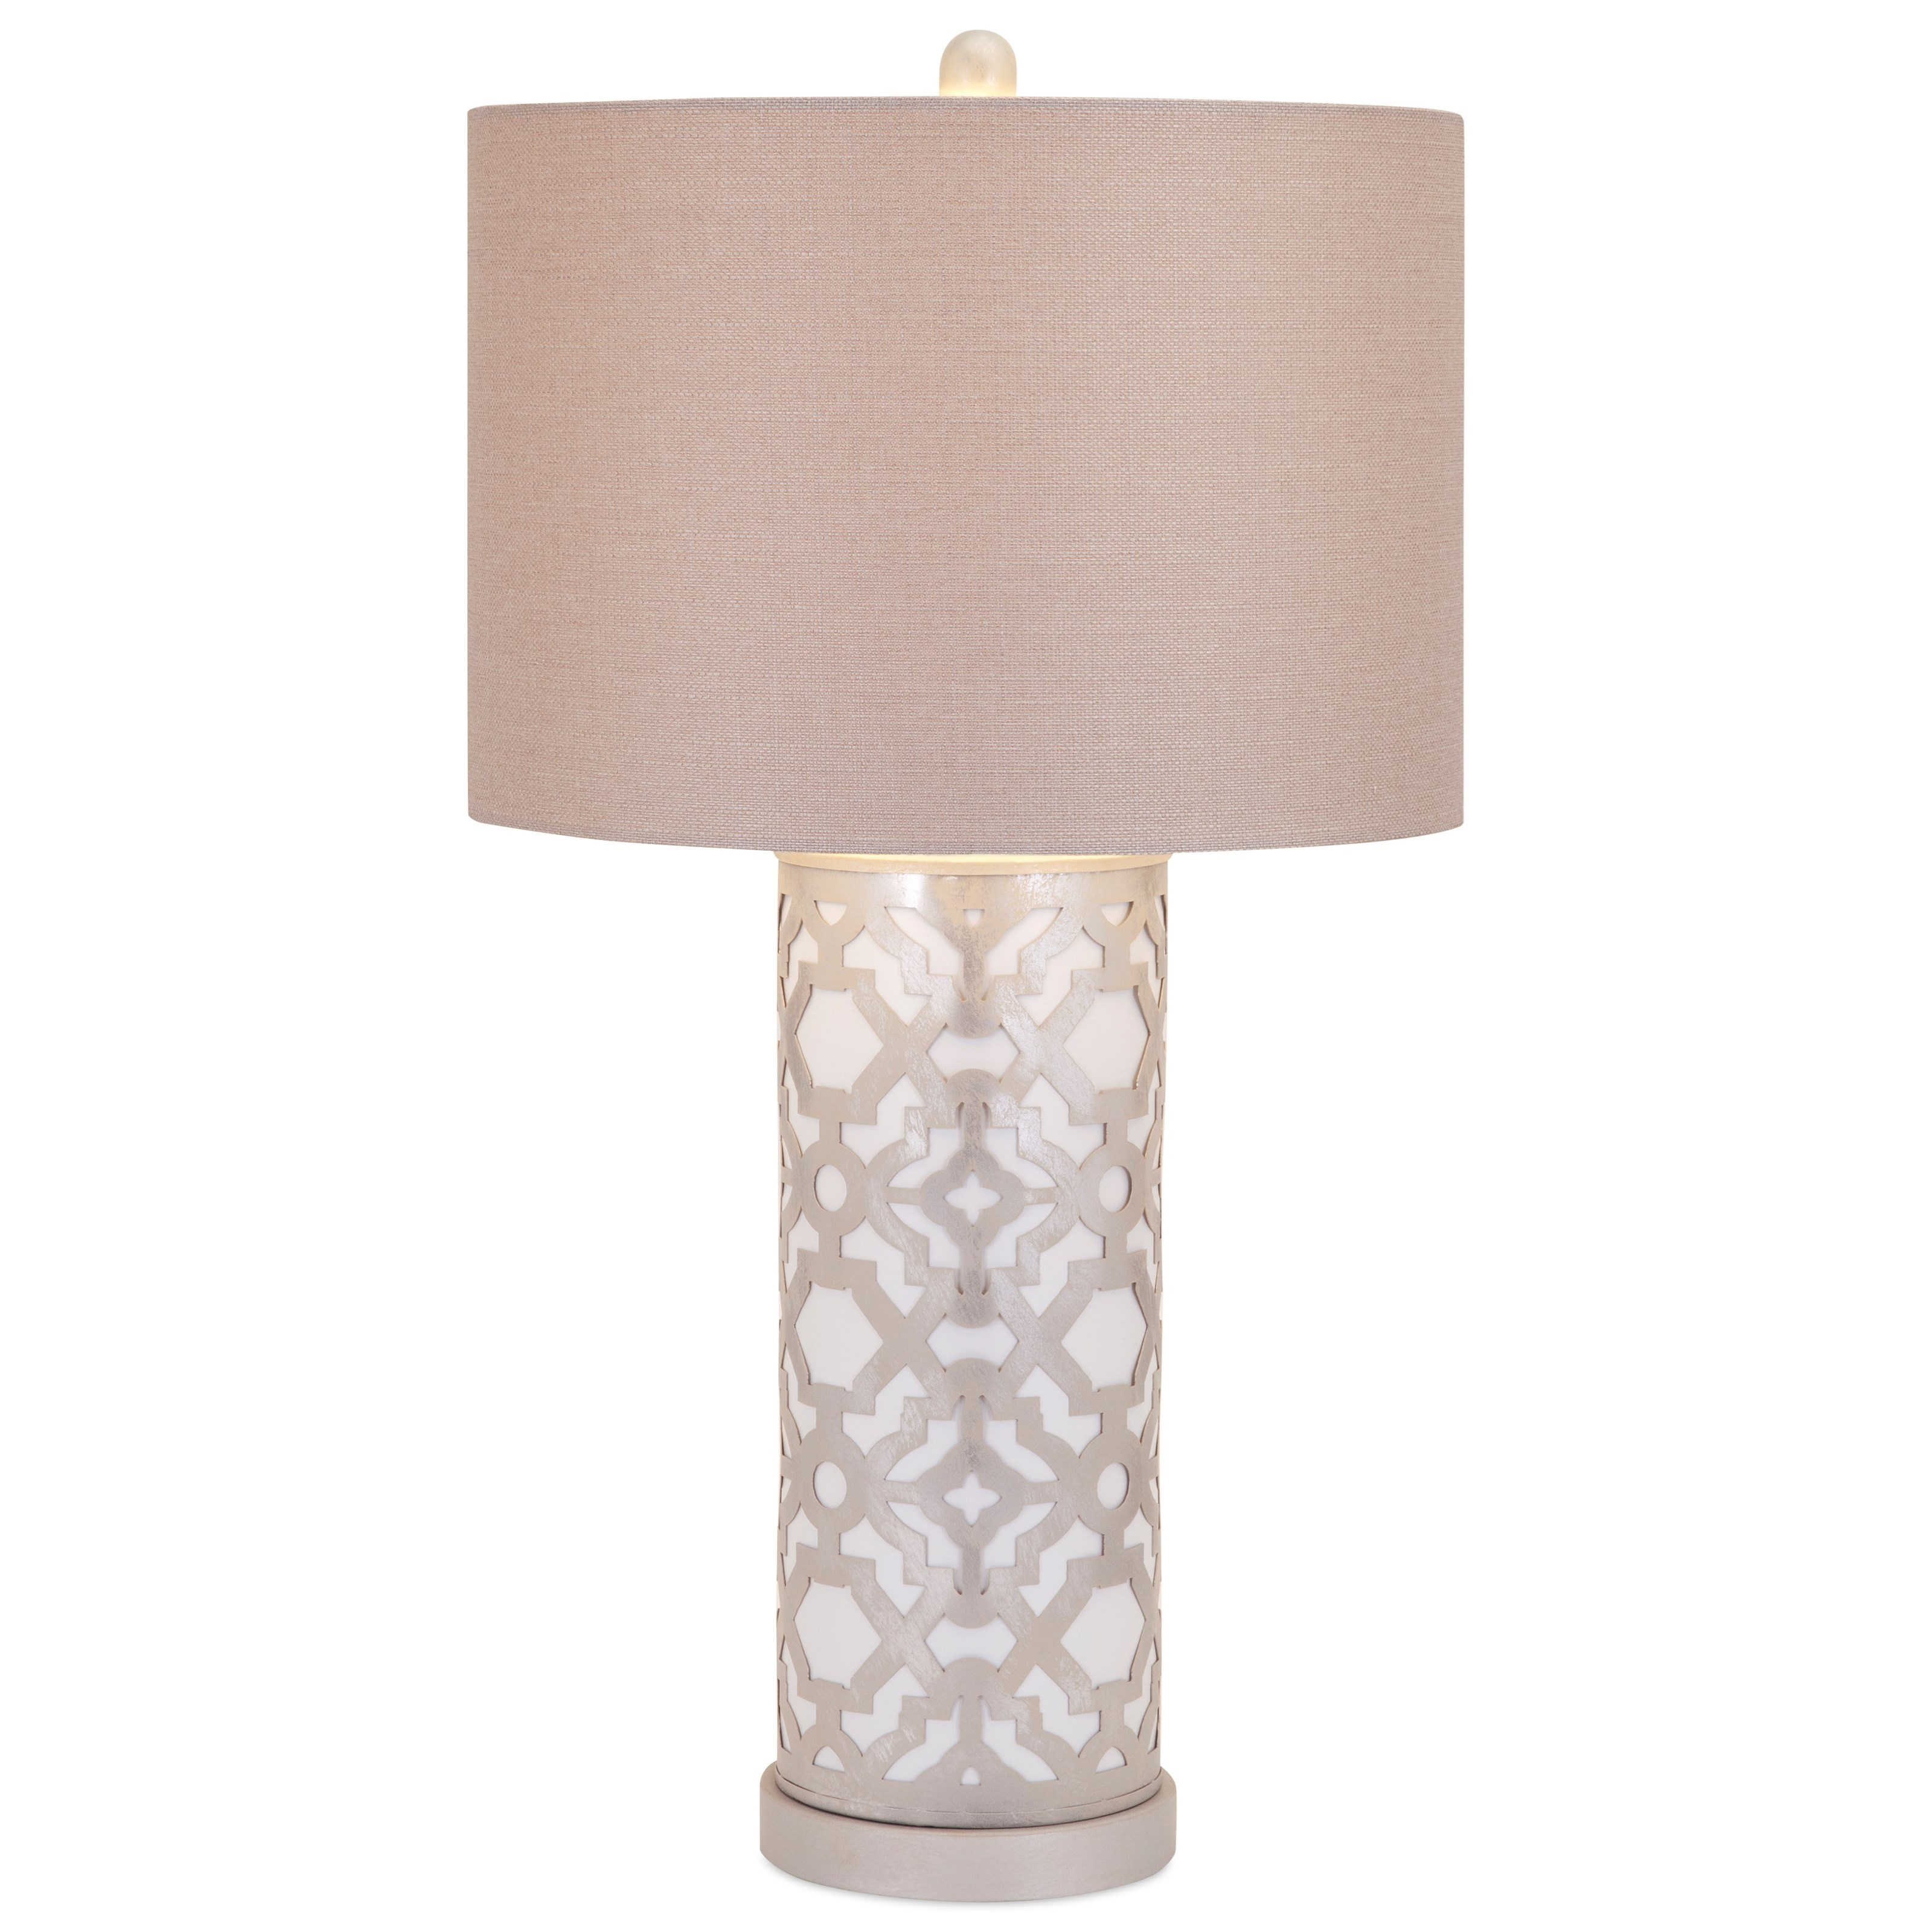 Becky Fletcher Perkins Table Lamp by IMAX Worldwide Home at Alison Craig Home Furnishings